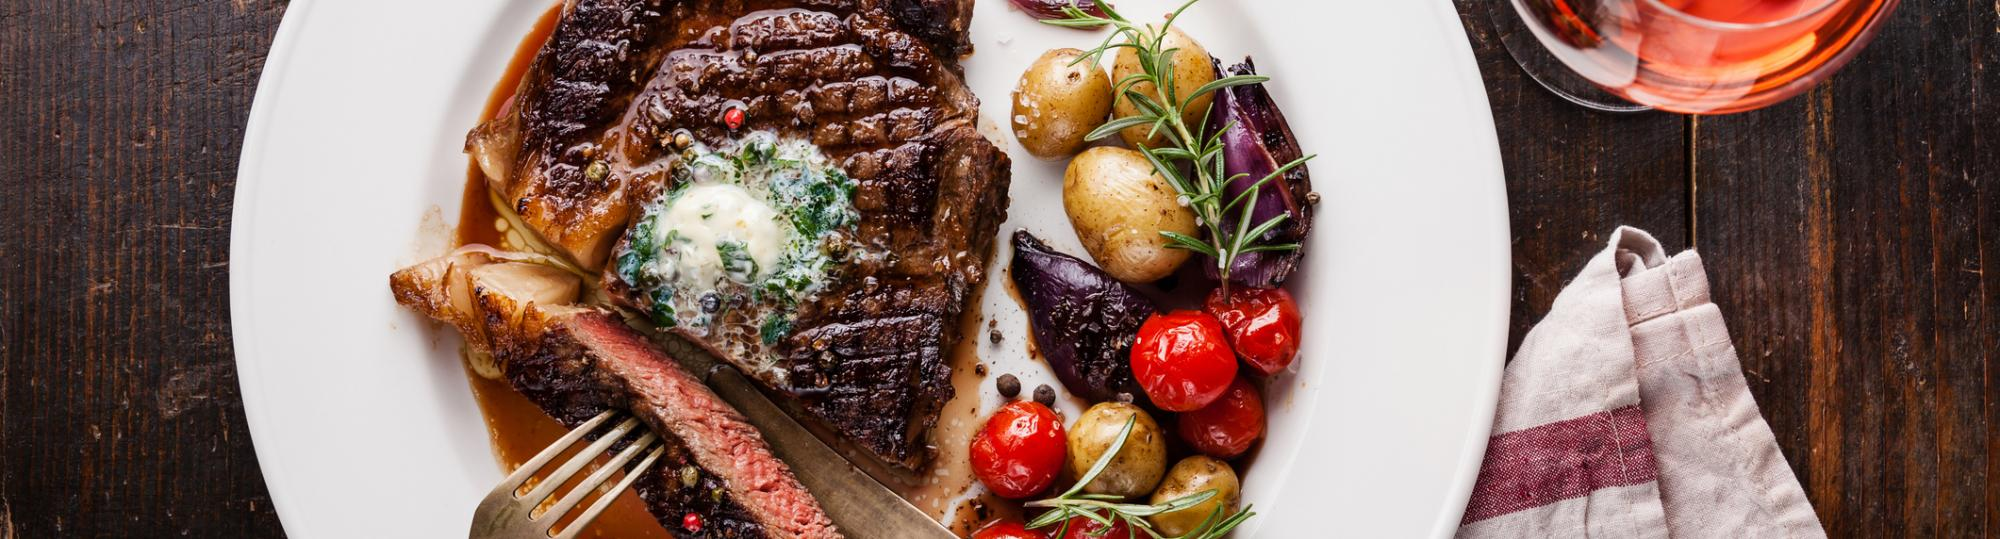 Omaha Steaks Military Discount with Veterans Advantage